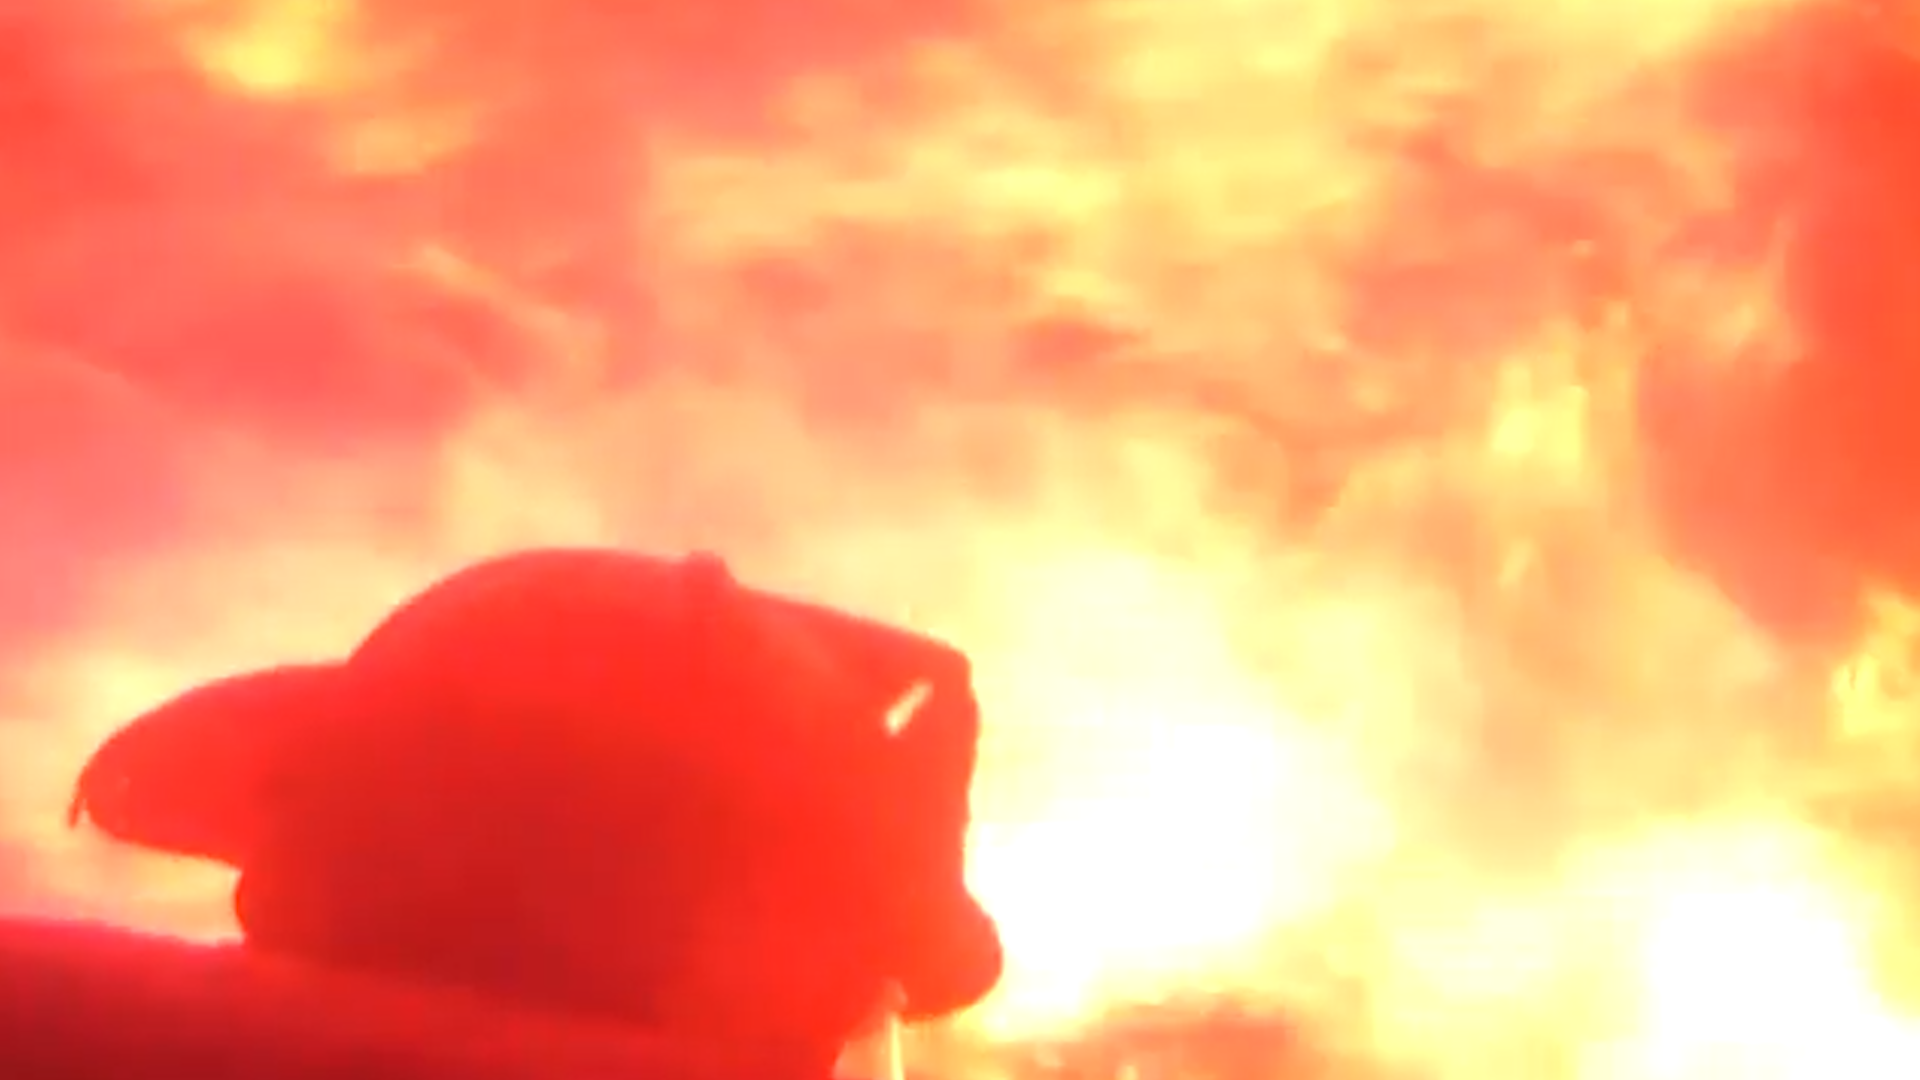 Helmet-cam video shows Birmingham firefighters battling a house fire on Avenue J.